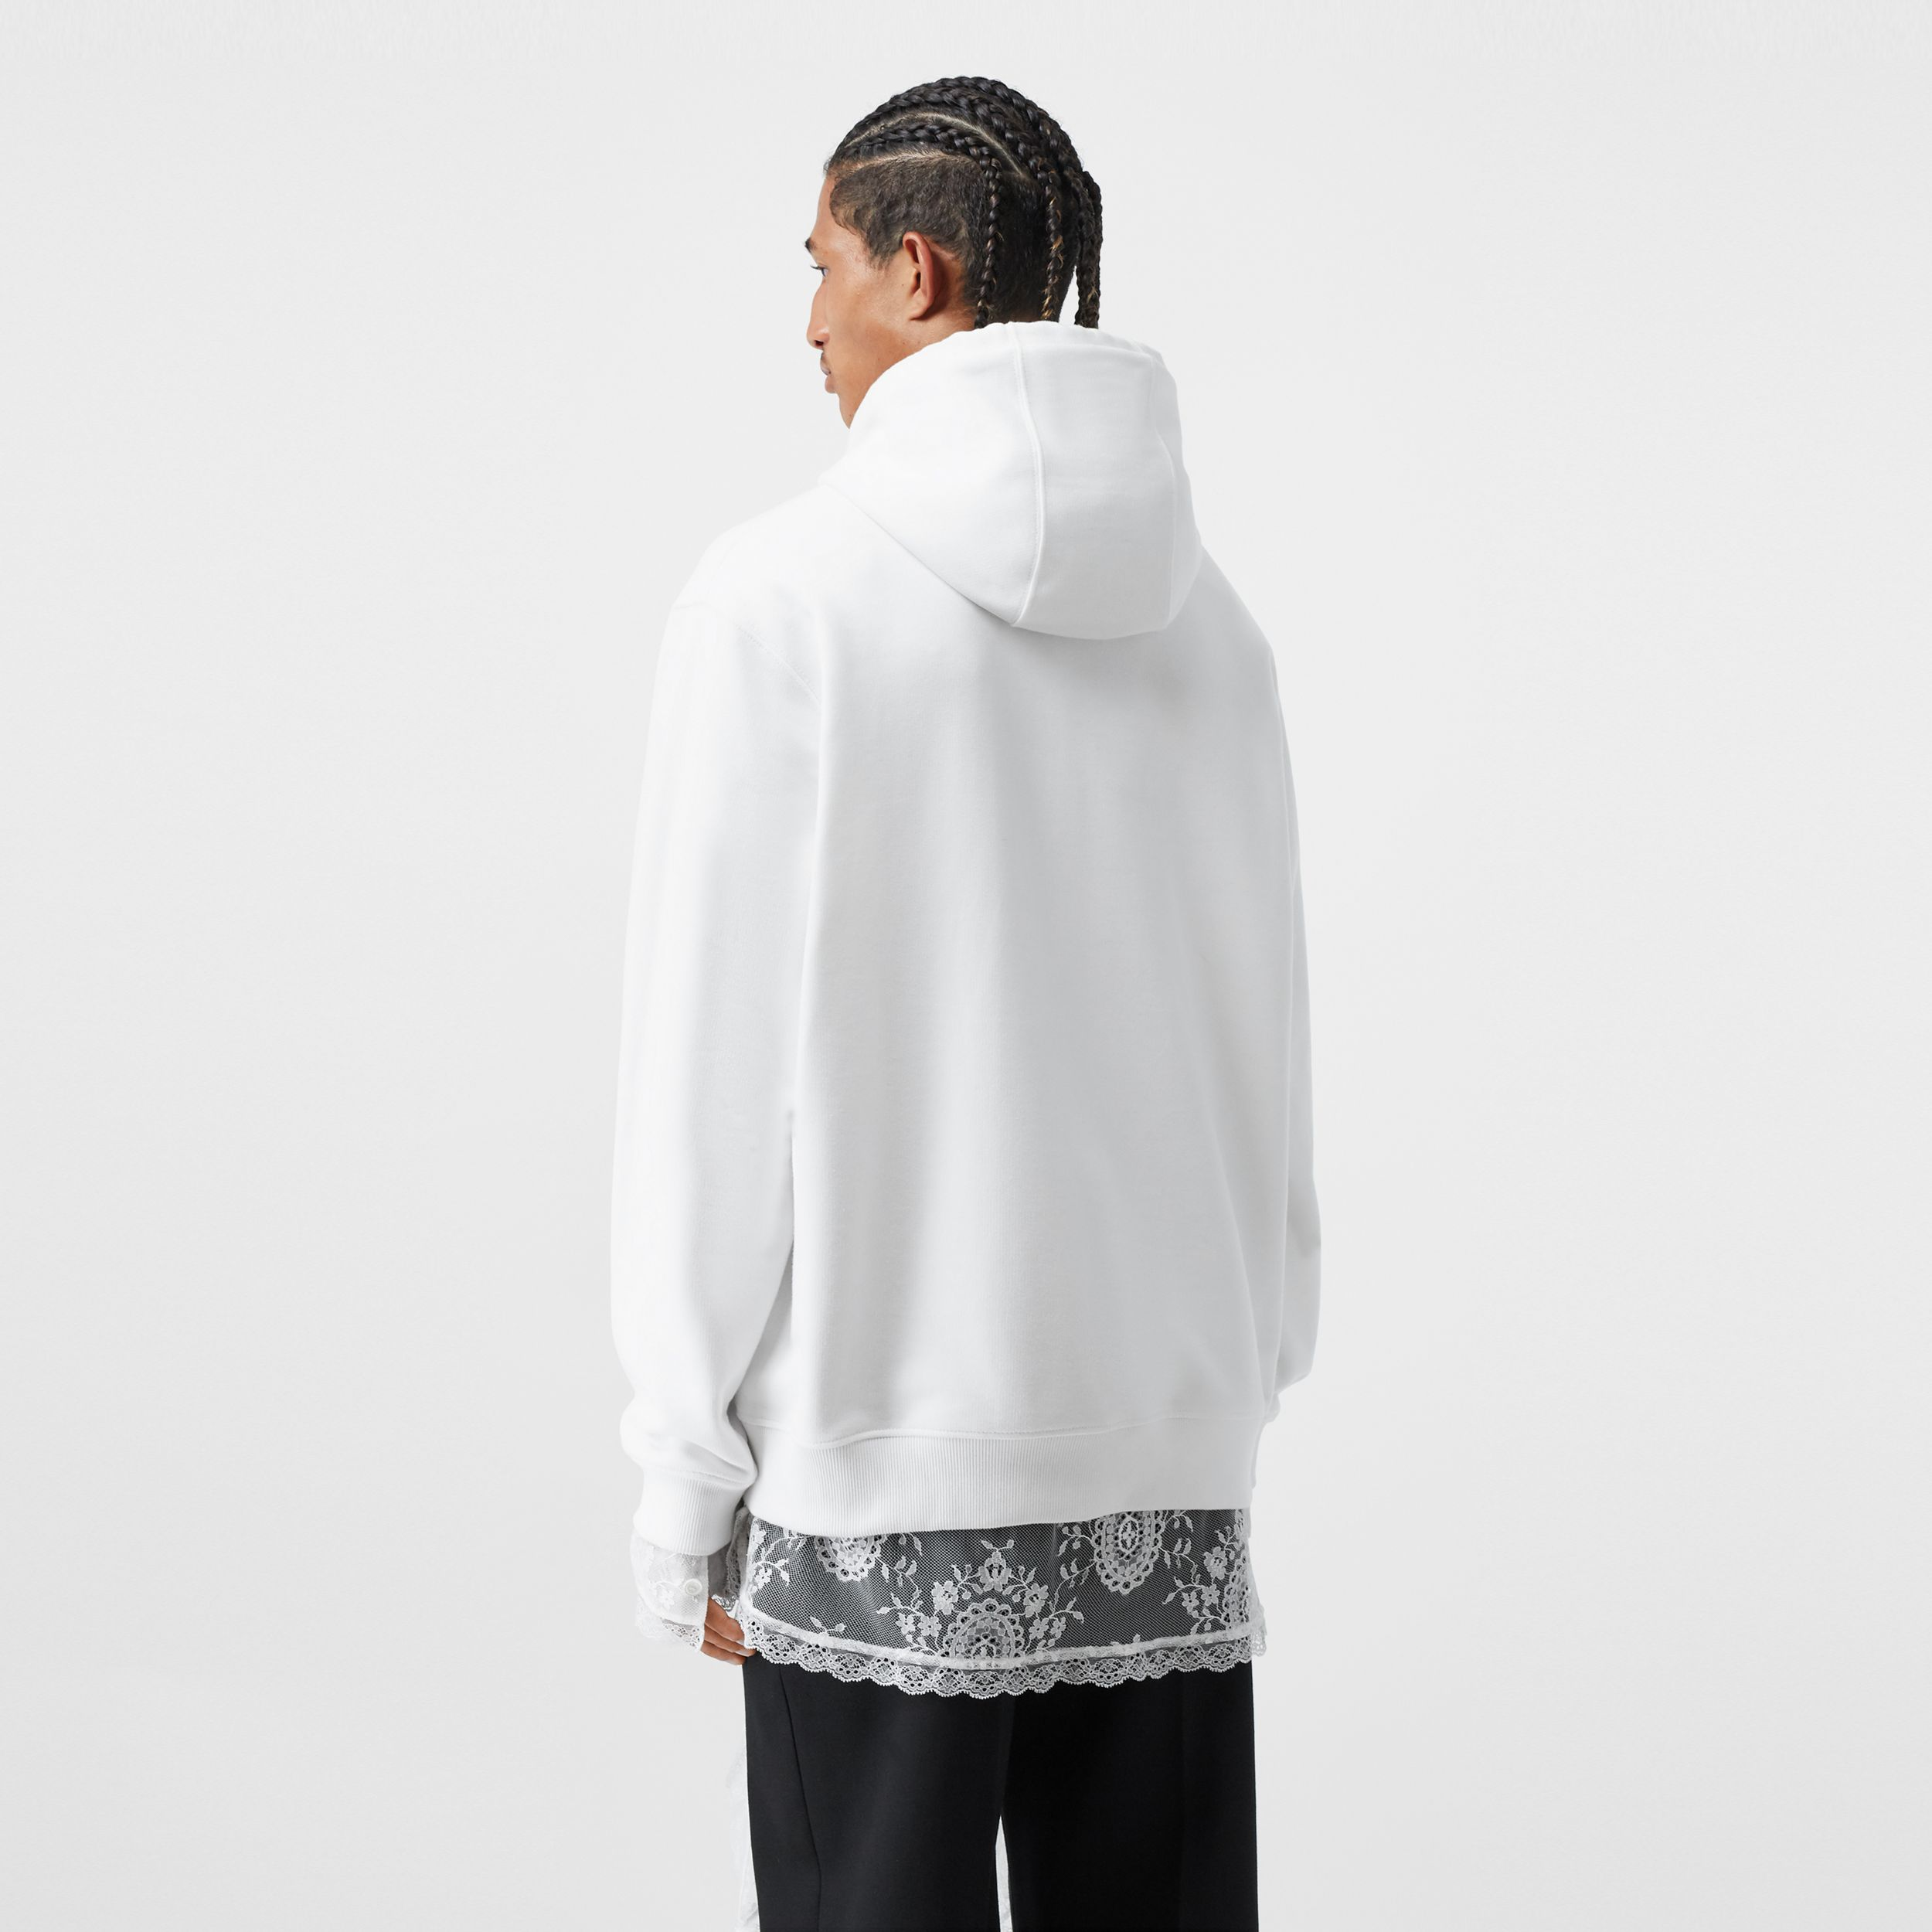 Cut-out Sleeve Globe Graphic Cotton Hoodie in Optic White - Men | Burberry - 3